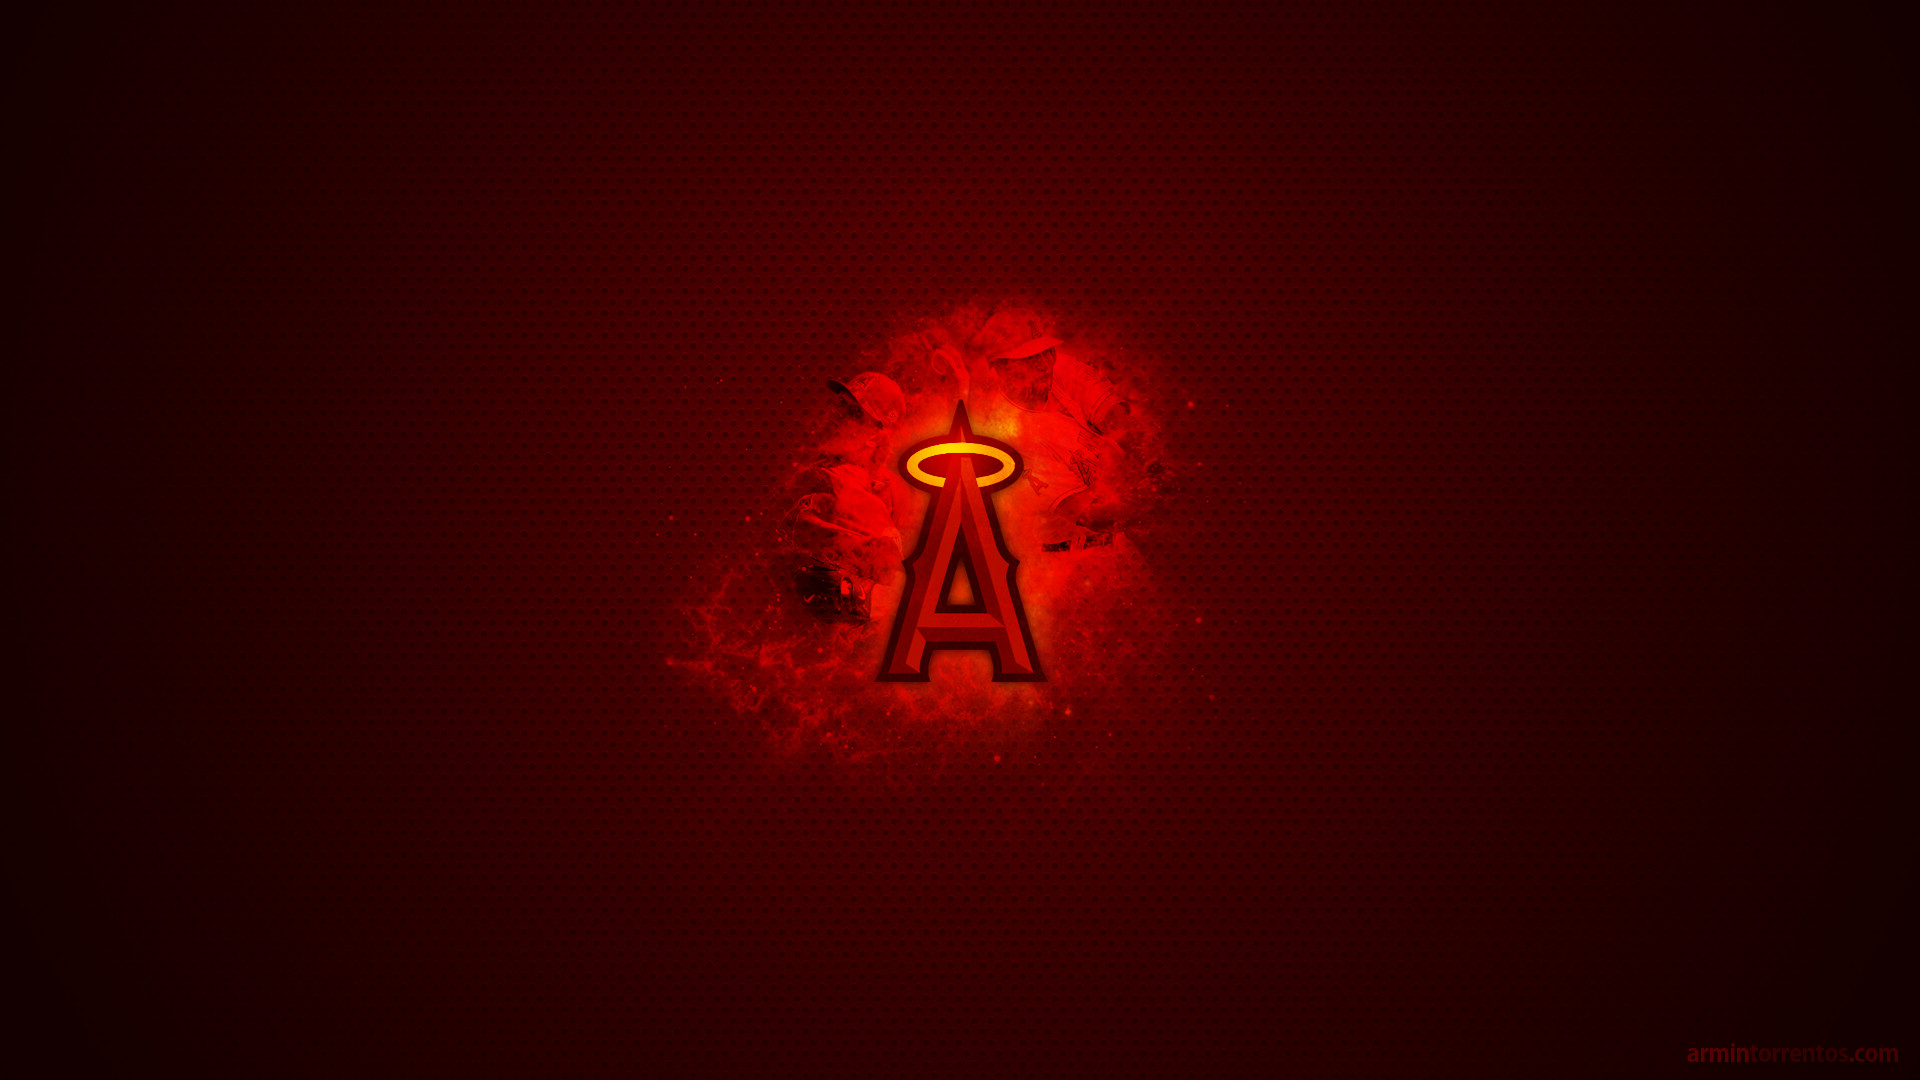 1920x1080 ANAHEIM ANGELS baseball mlb eh wallpaper  158466